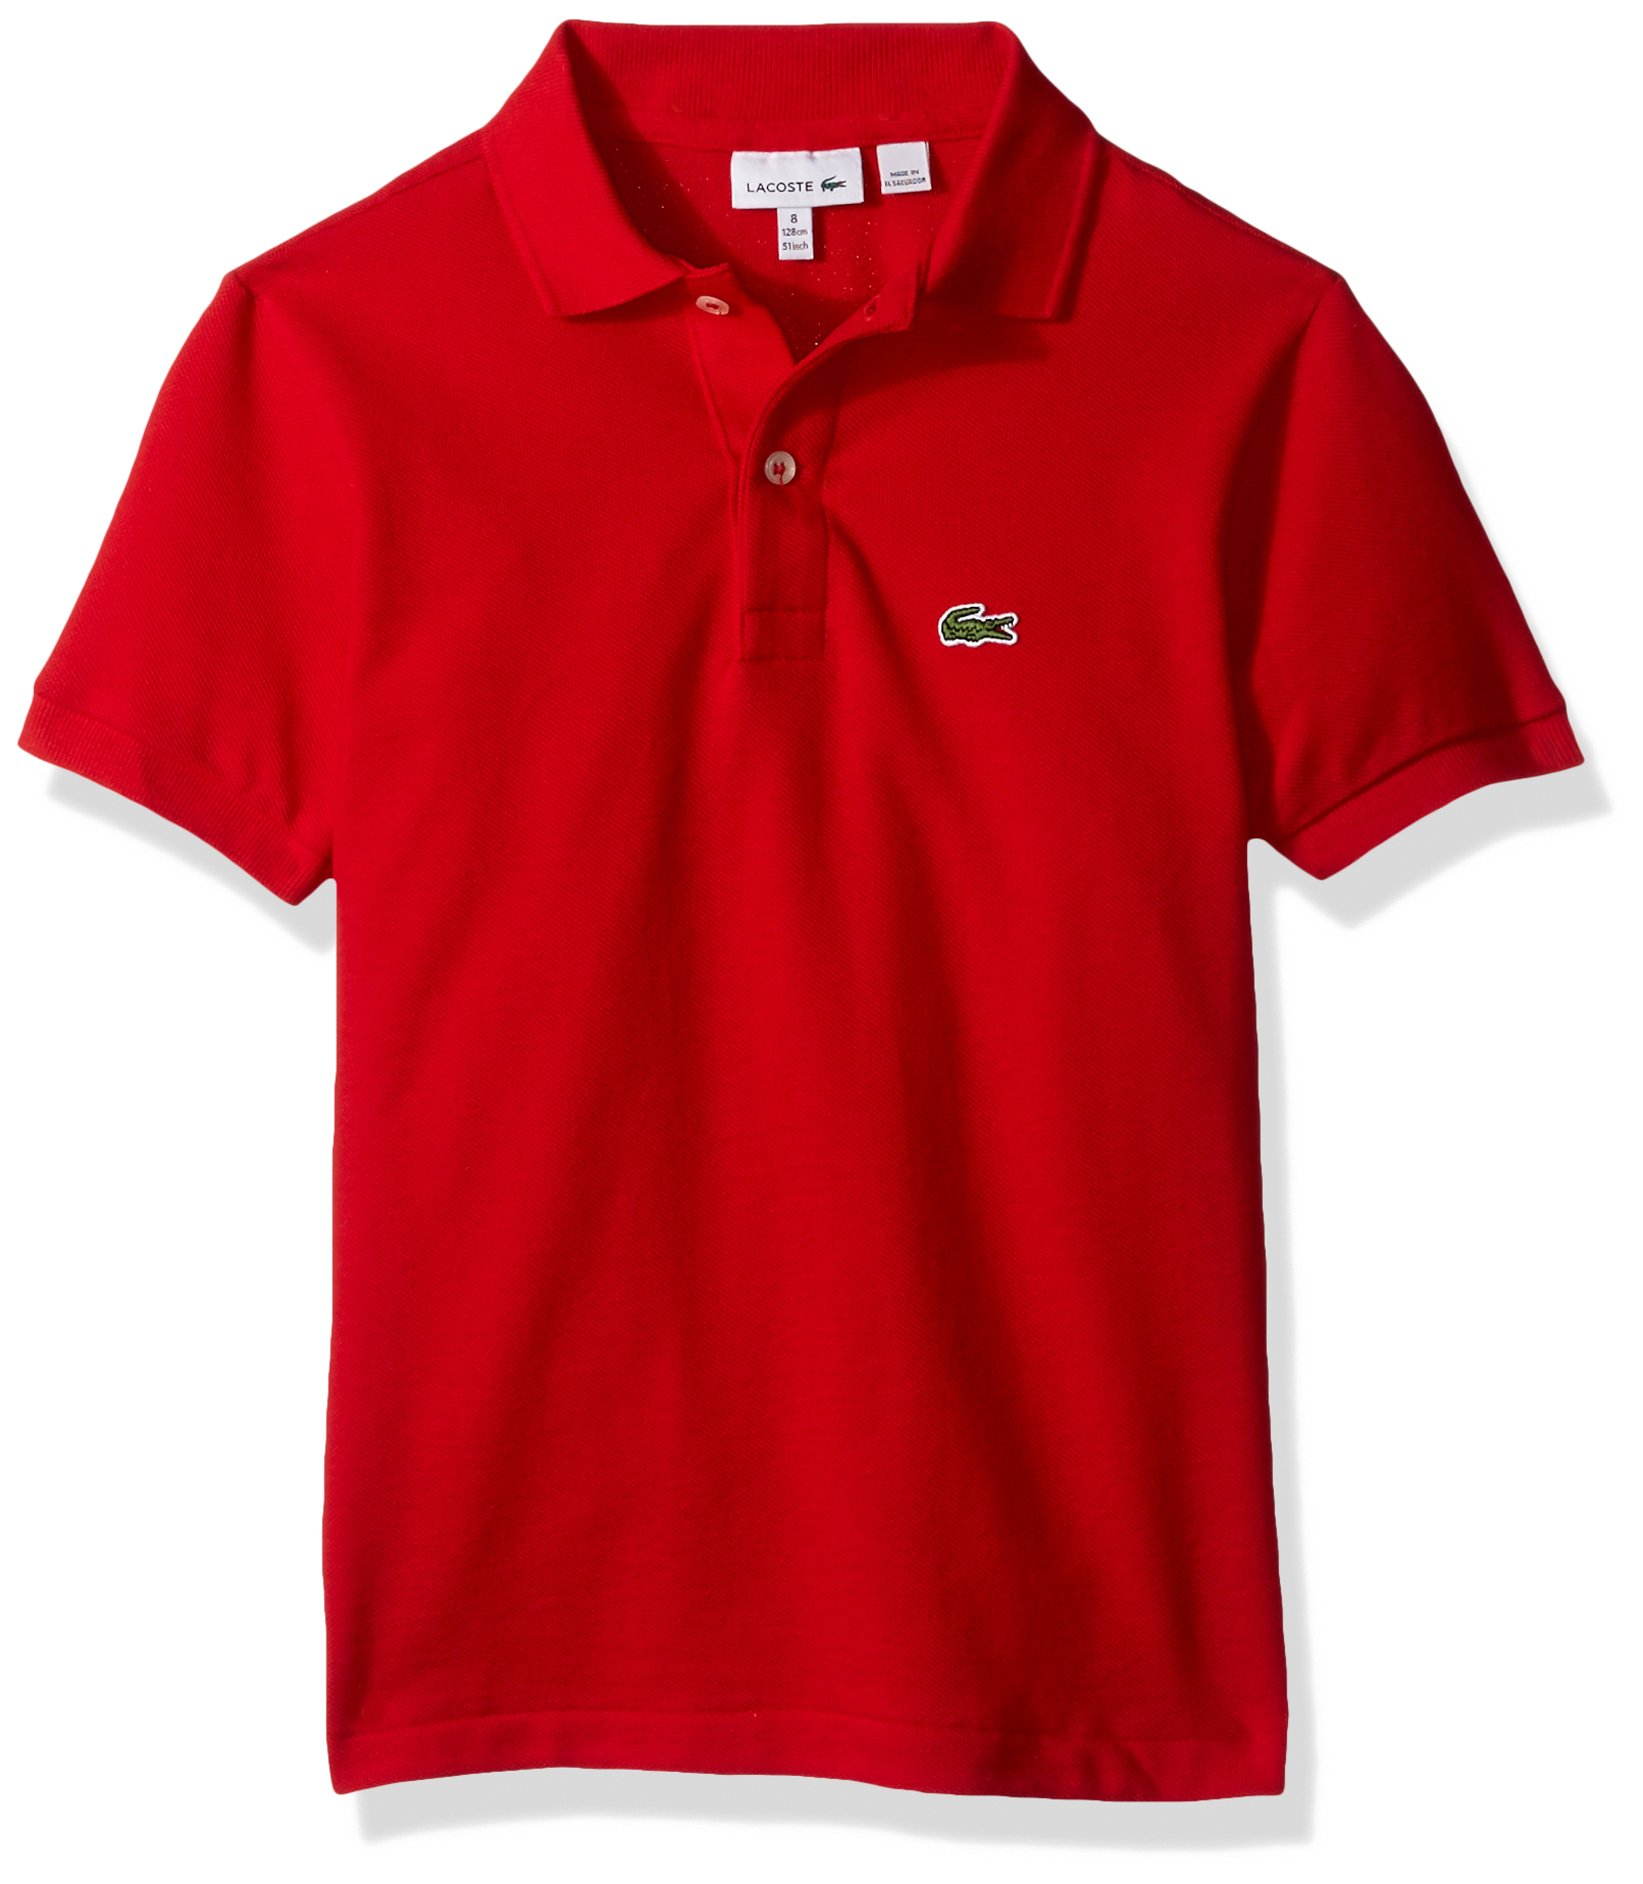 Lacoste Boys' Big' Classic Short Sleeve Petit Piqué Polo Shirt, Red, 10Y